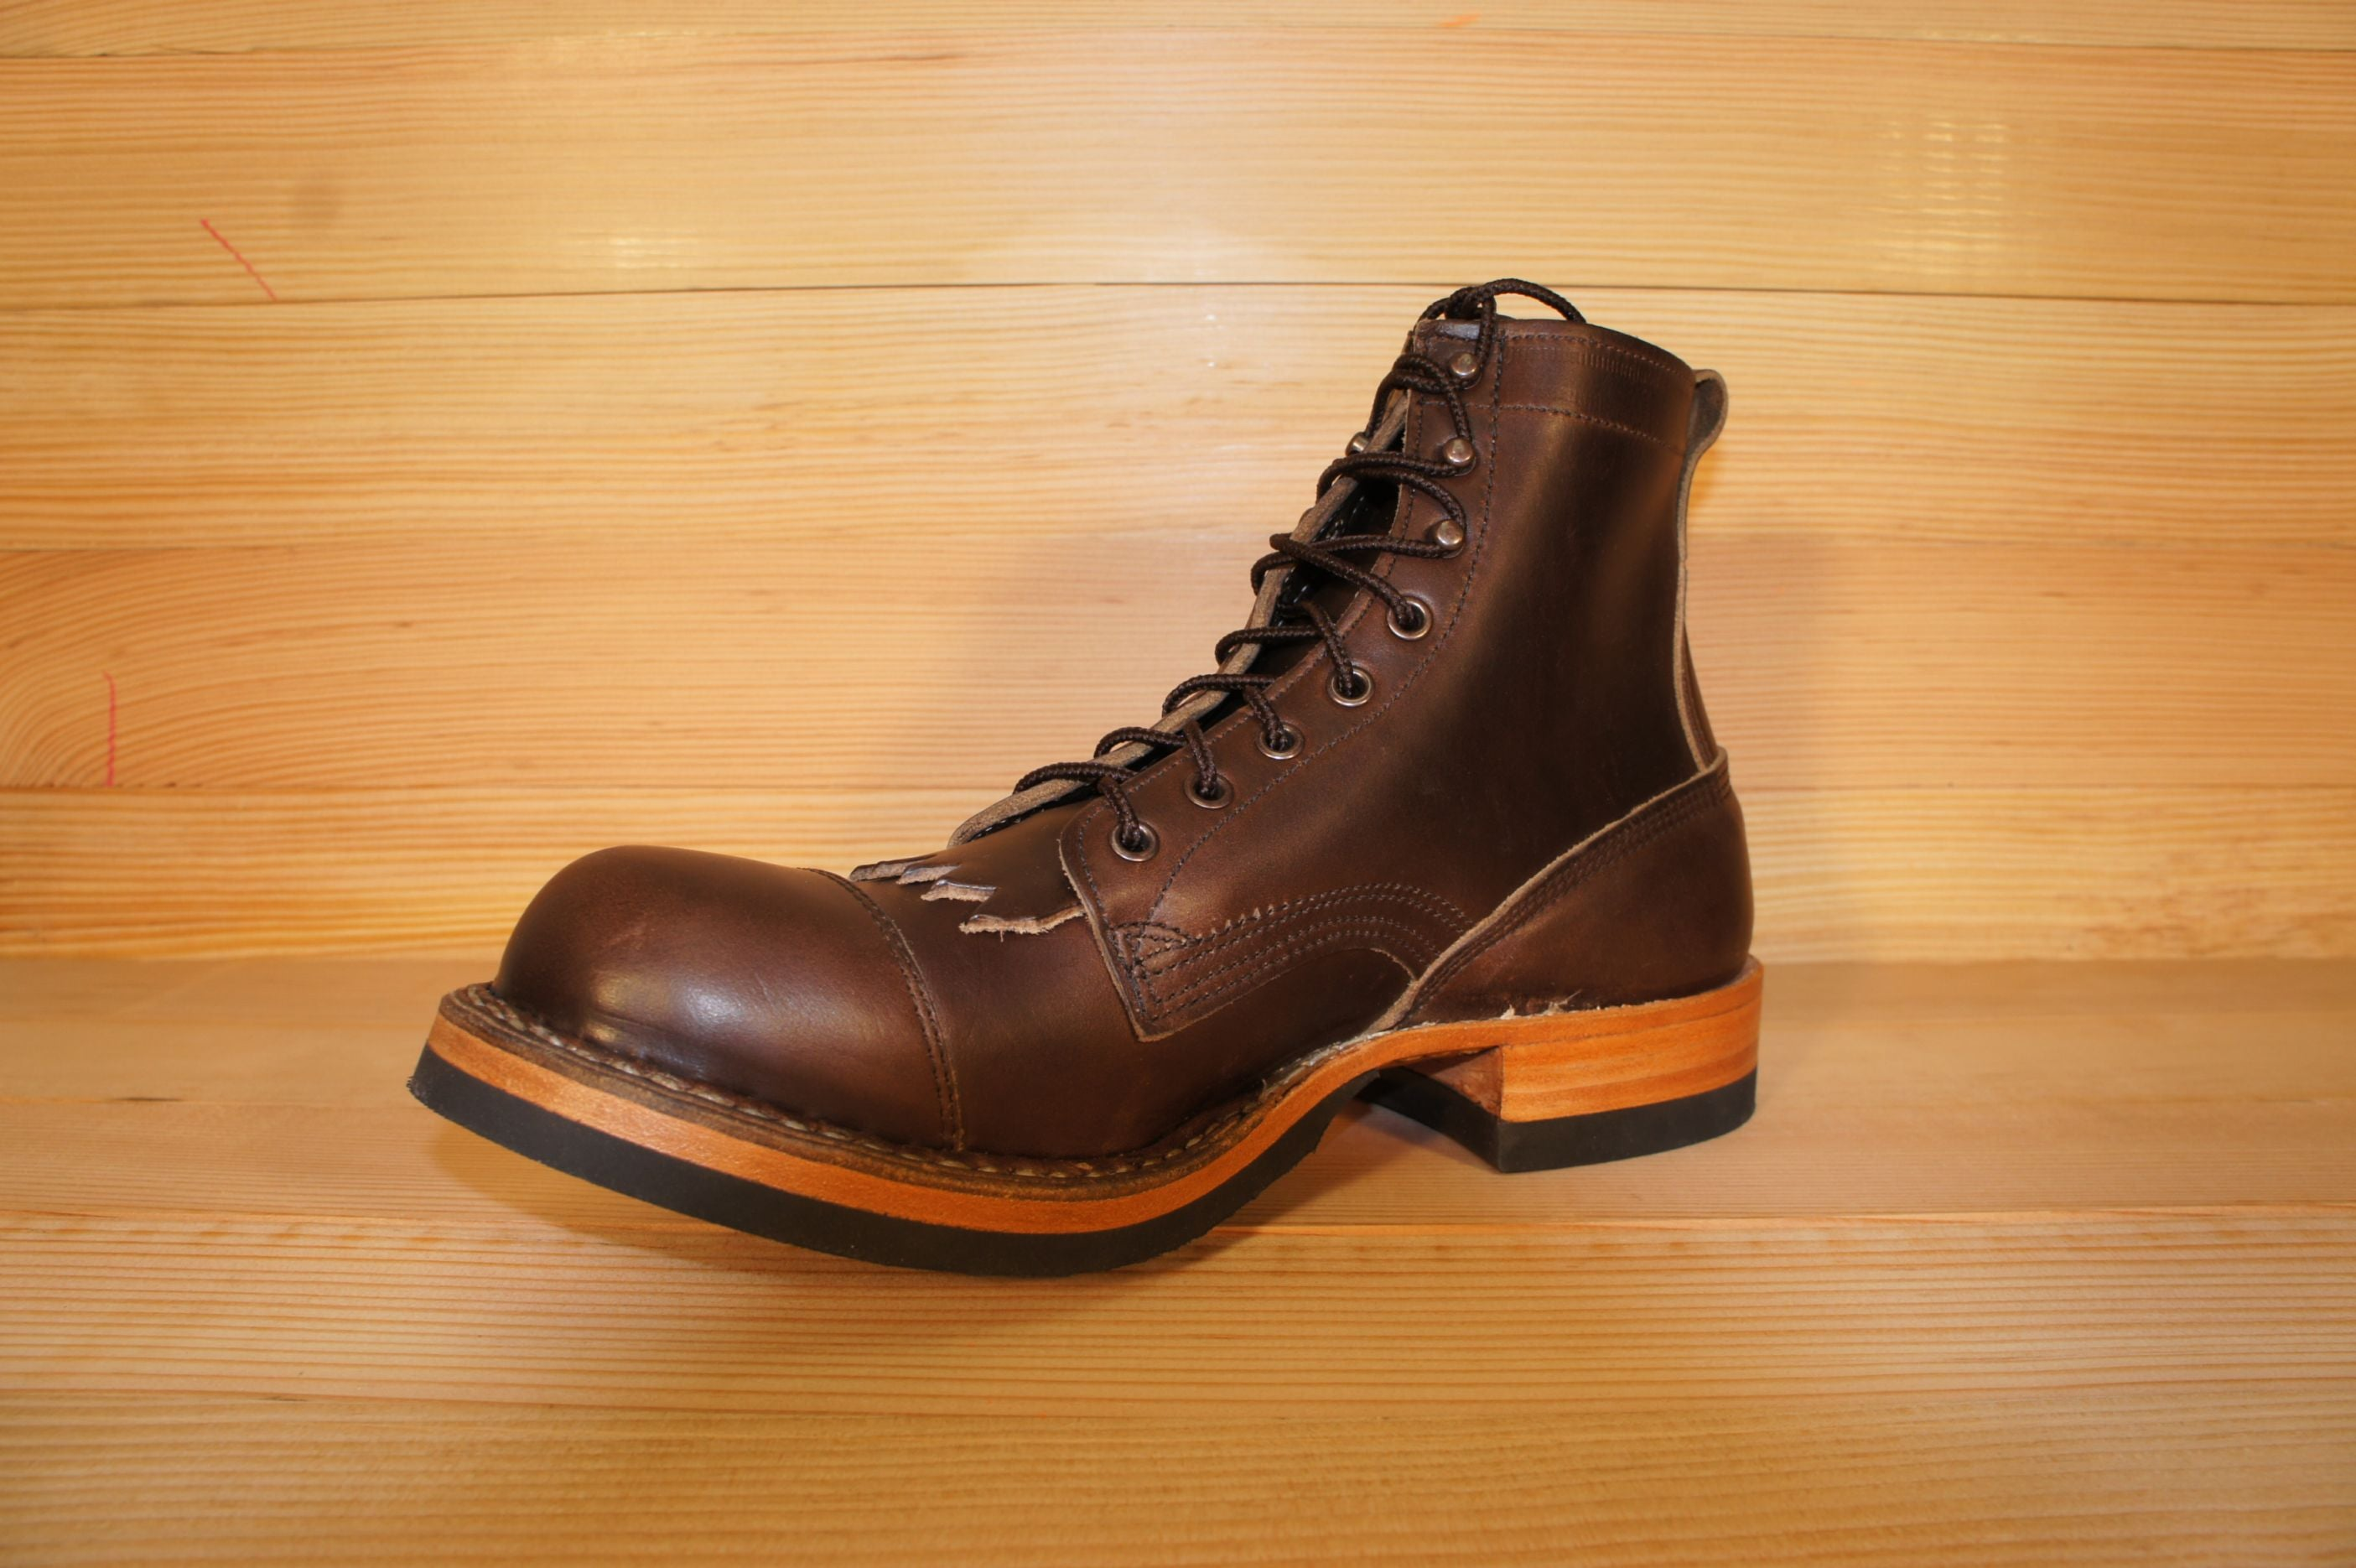 Classic Work Boots